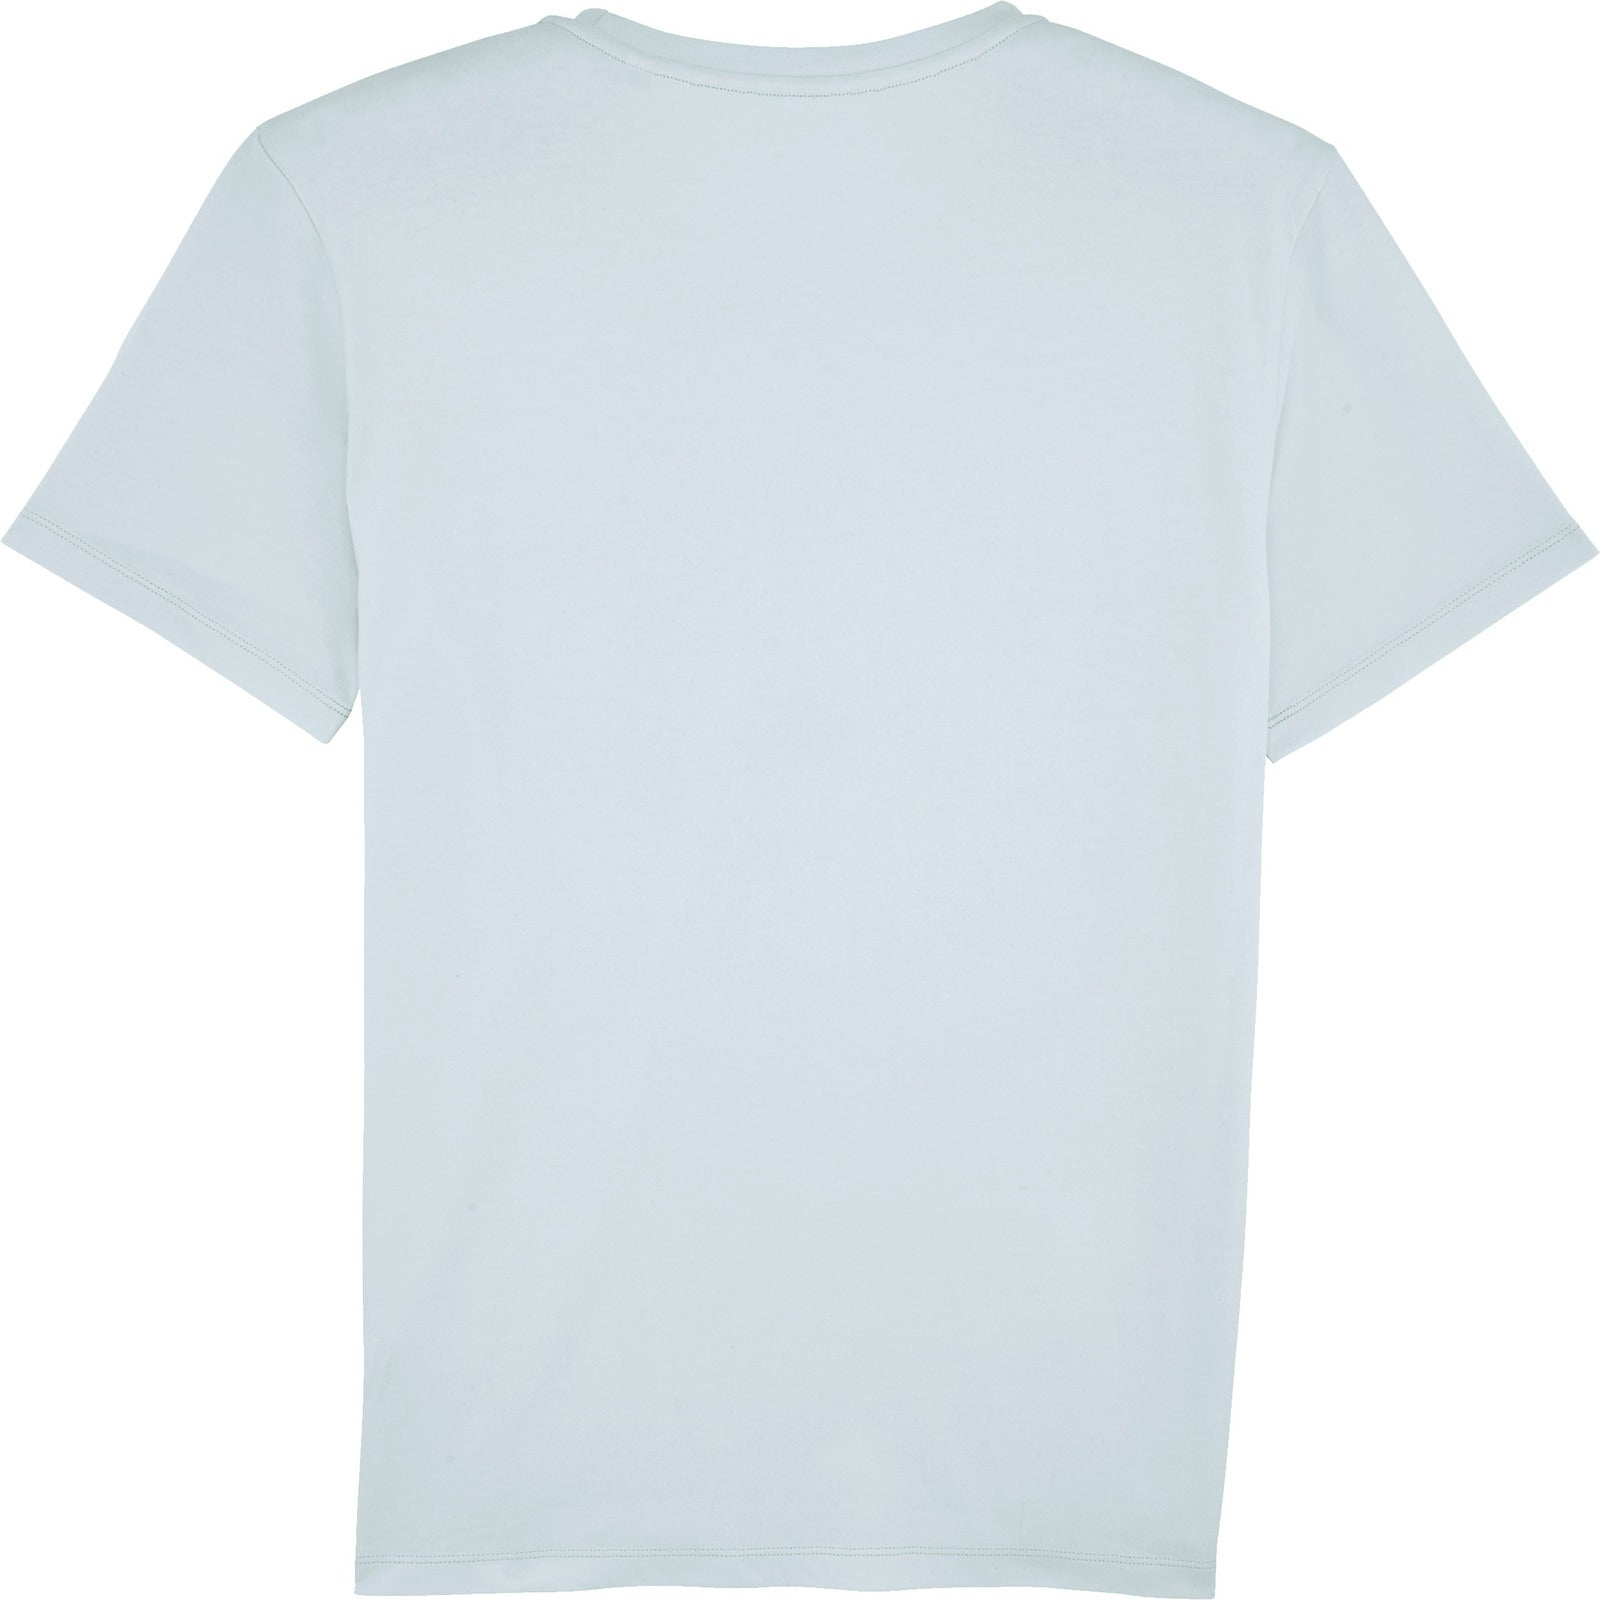 T-SHIRT REGULAR FIT [BABY BLAU] - Hanseat